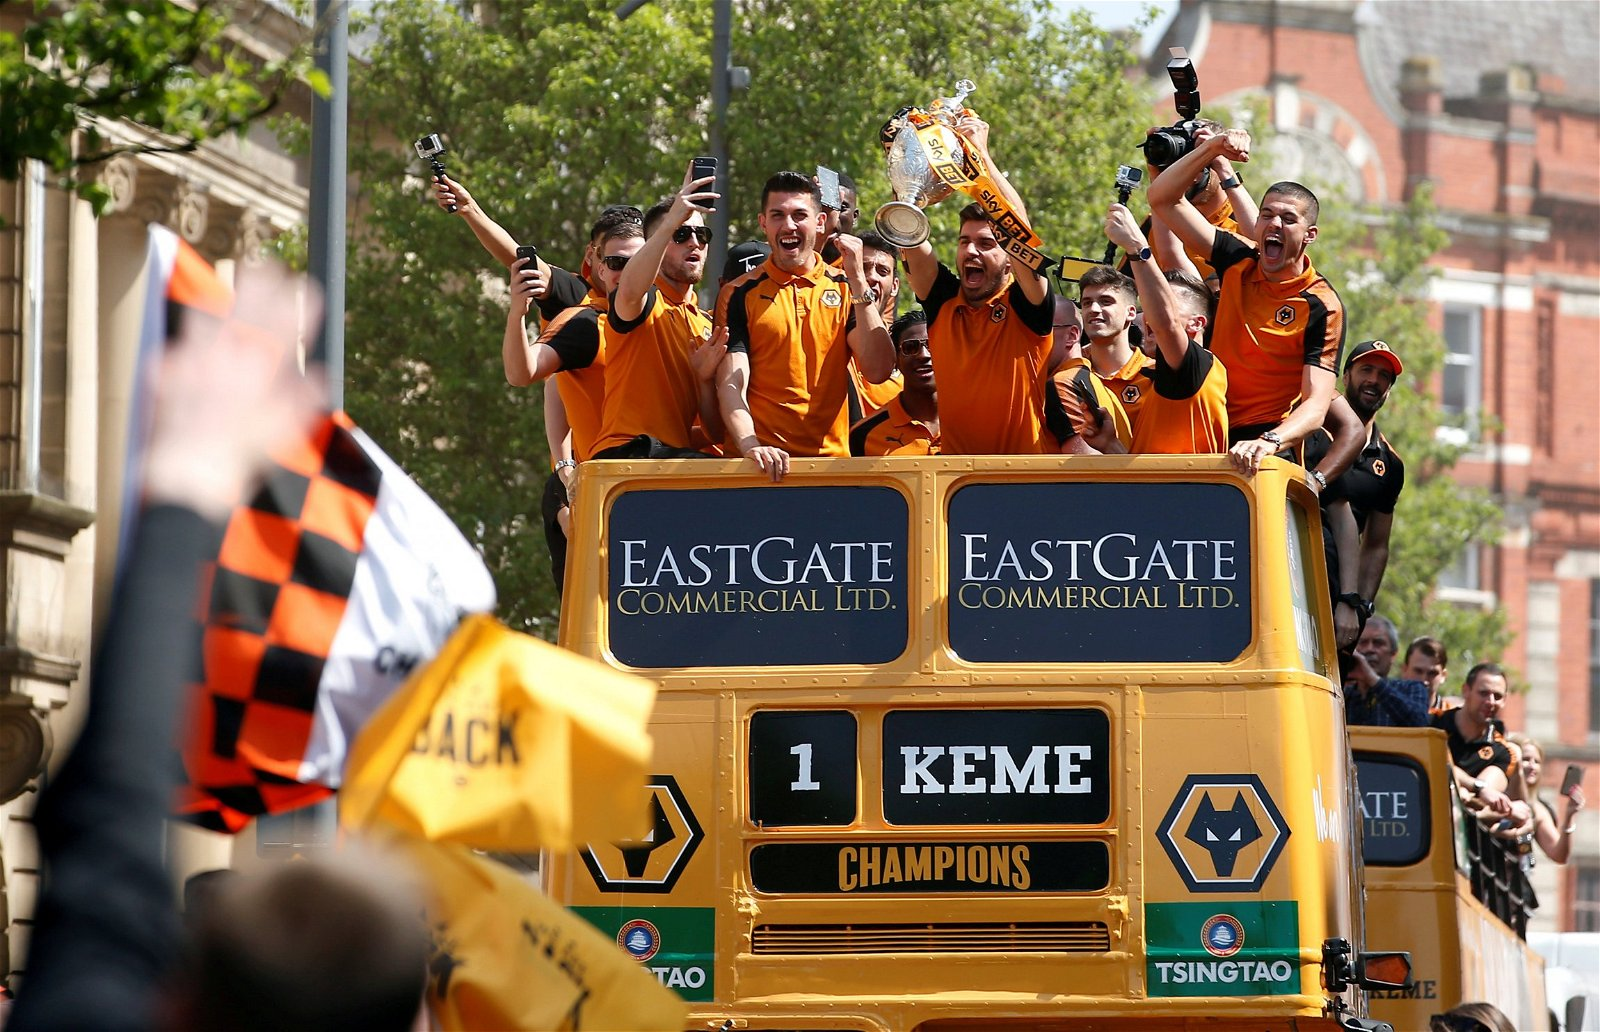 Wolverhampton Wanderers' Ruben Neves celebrates with the Championship trophy on the open top bus during the parade